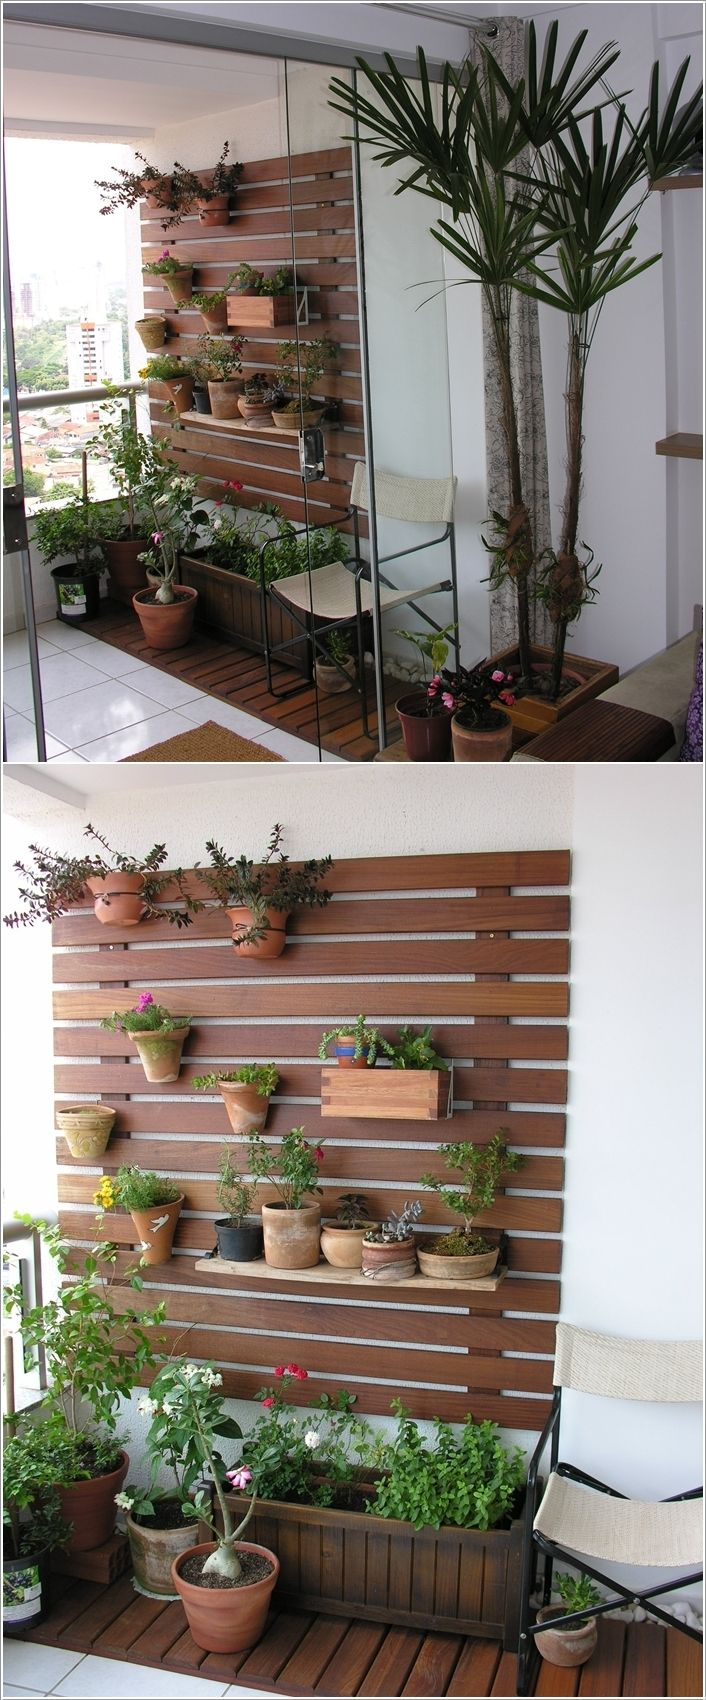 Vertical garden for side wall for the balcony for Balcony vertical garden